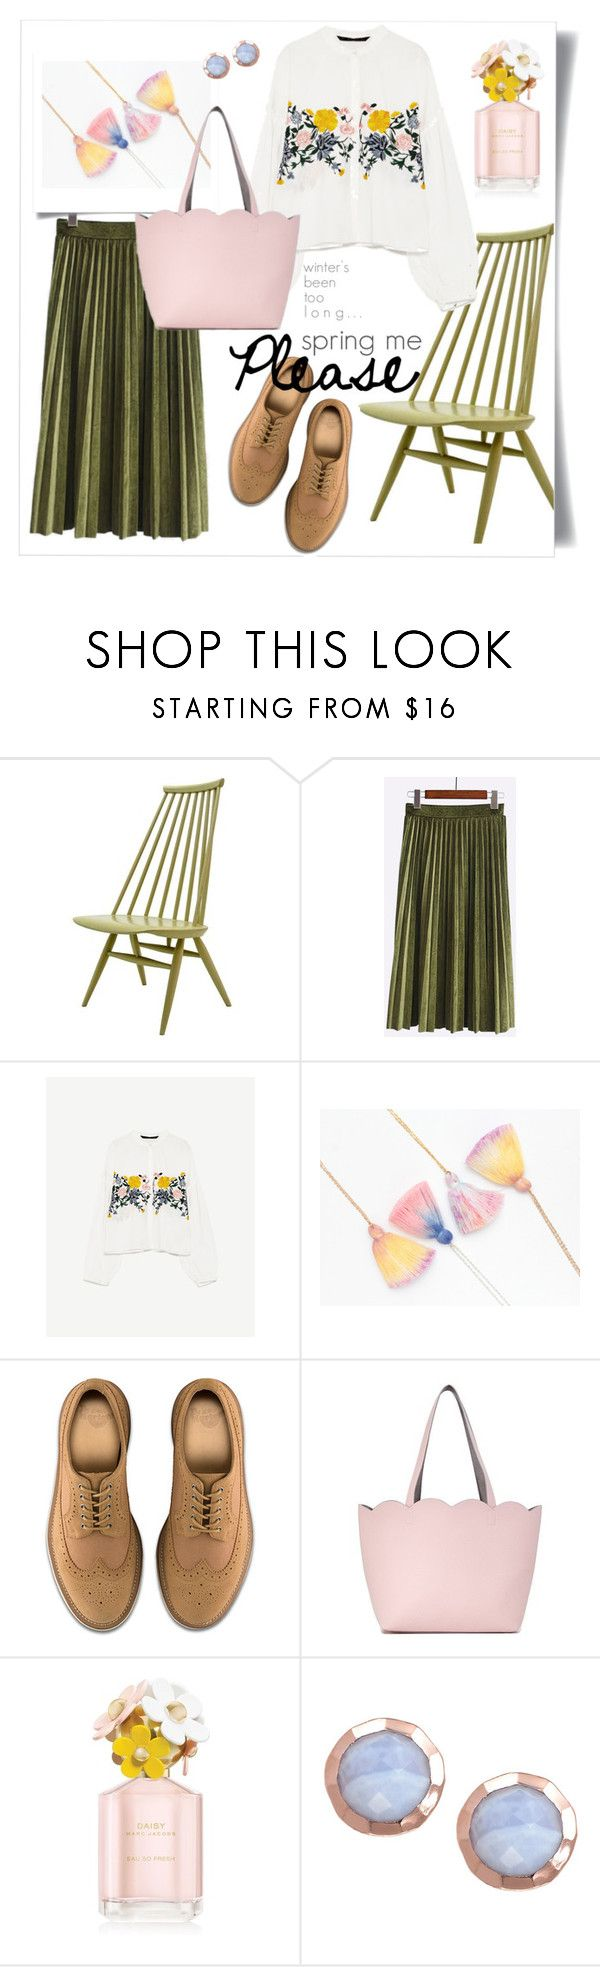 """""""Spring me Please"""" by heyou-eu ❤ liked on Polyvore featuring Dr. Martens, Deux Lux, Marc Jacobs, Spring, floral and embroidered"""